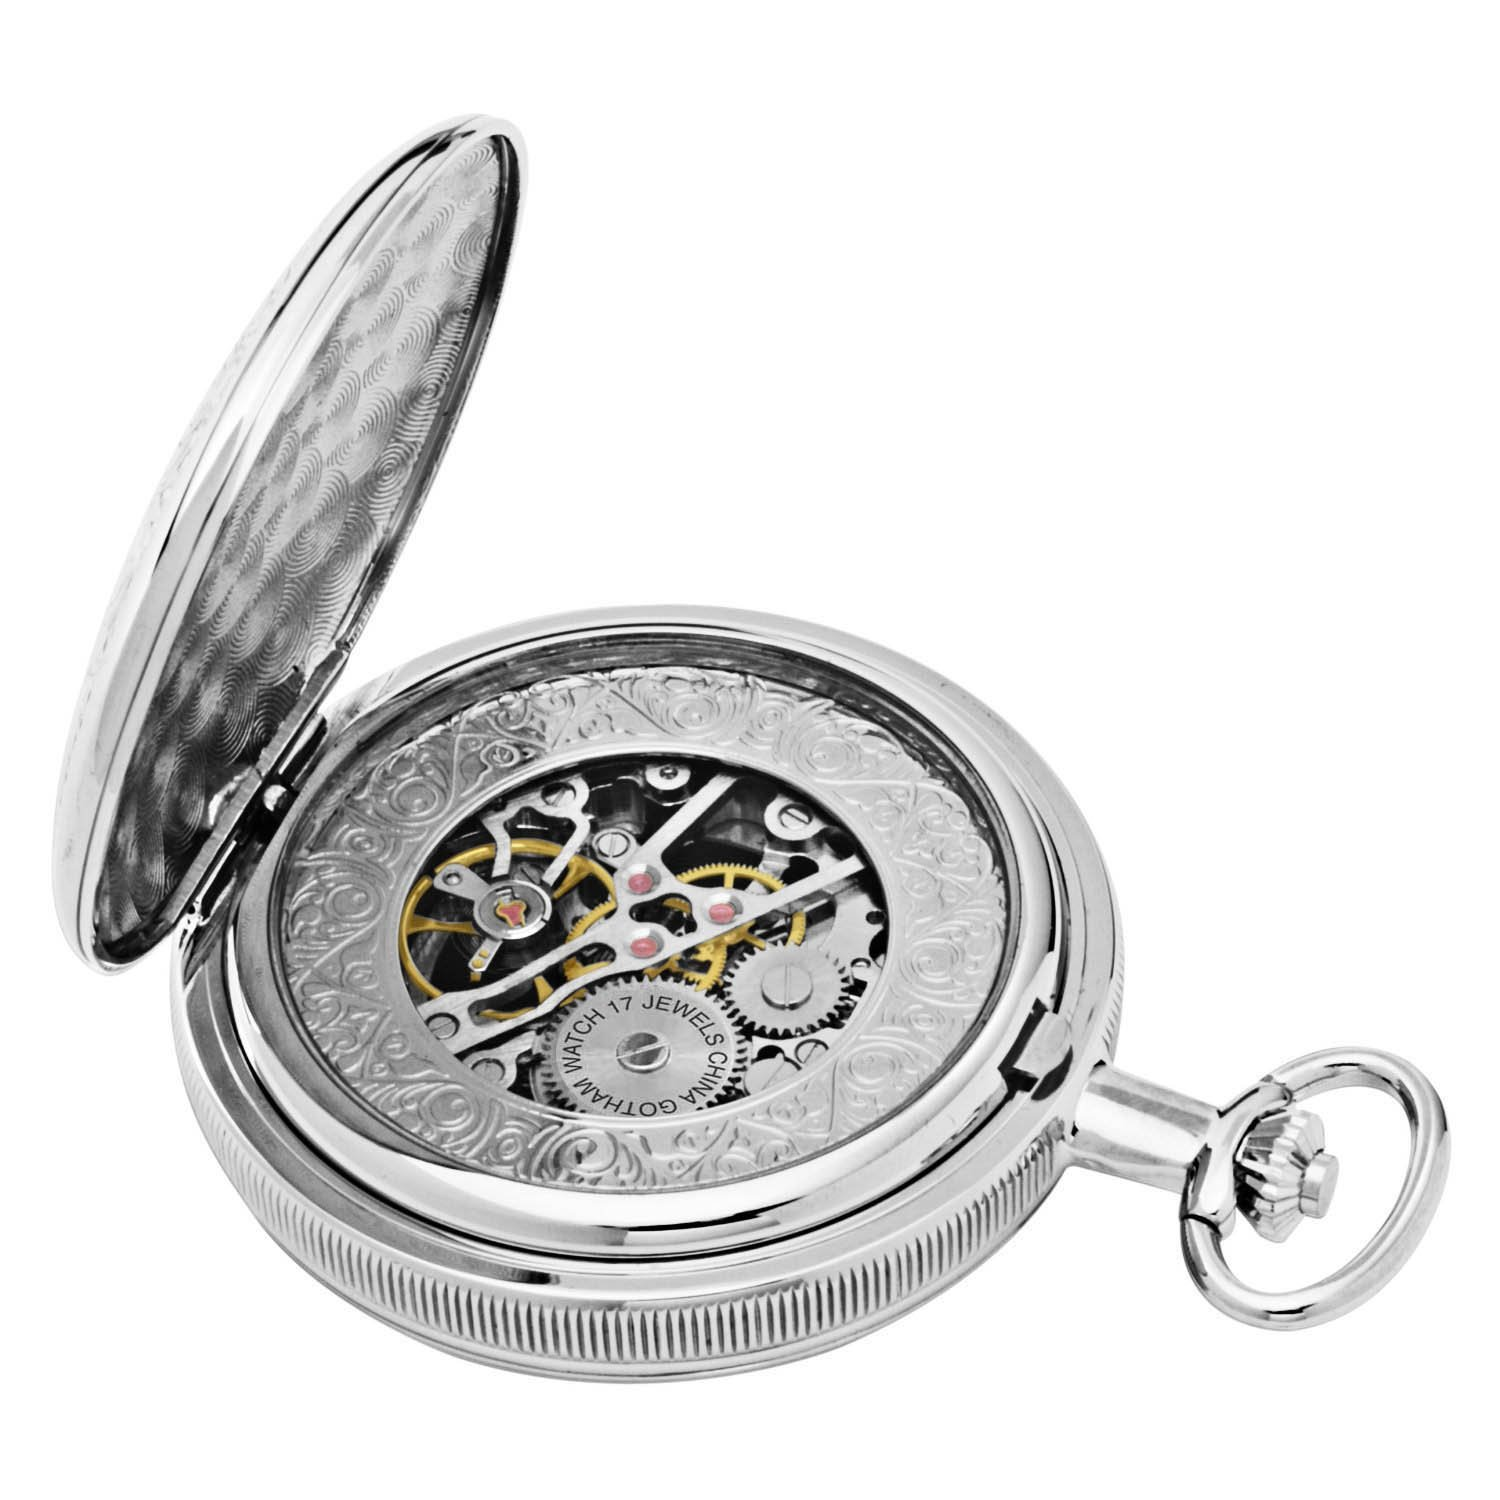 Gotham Men's Silver-Tone Mechanical Pocket Watch with Desktop Stand # GWC14051S-ST by Gotham (Image #6)